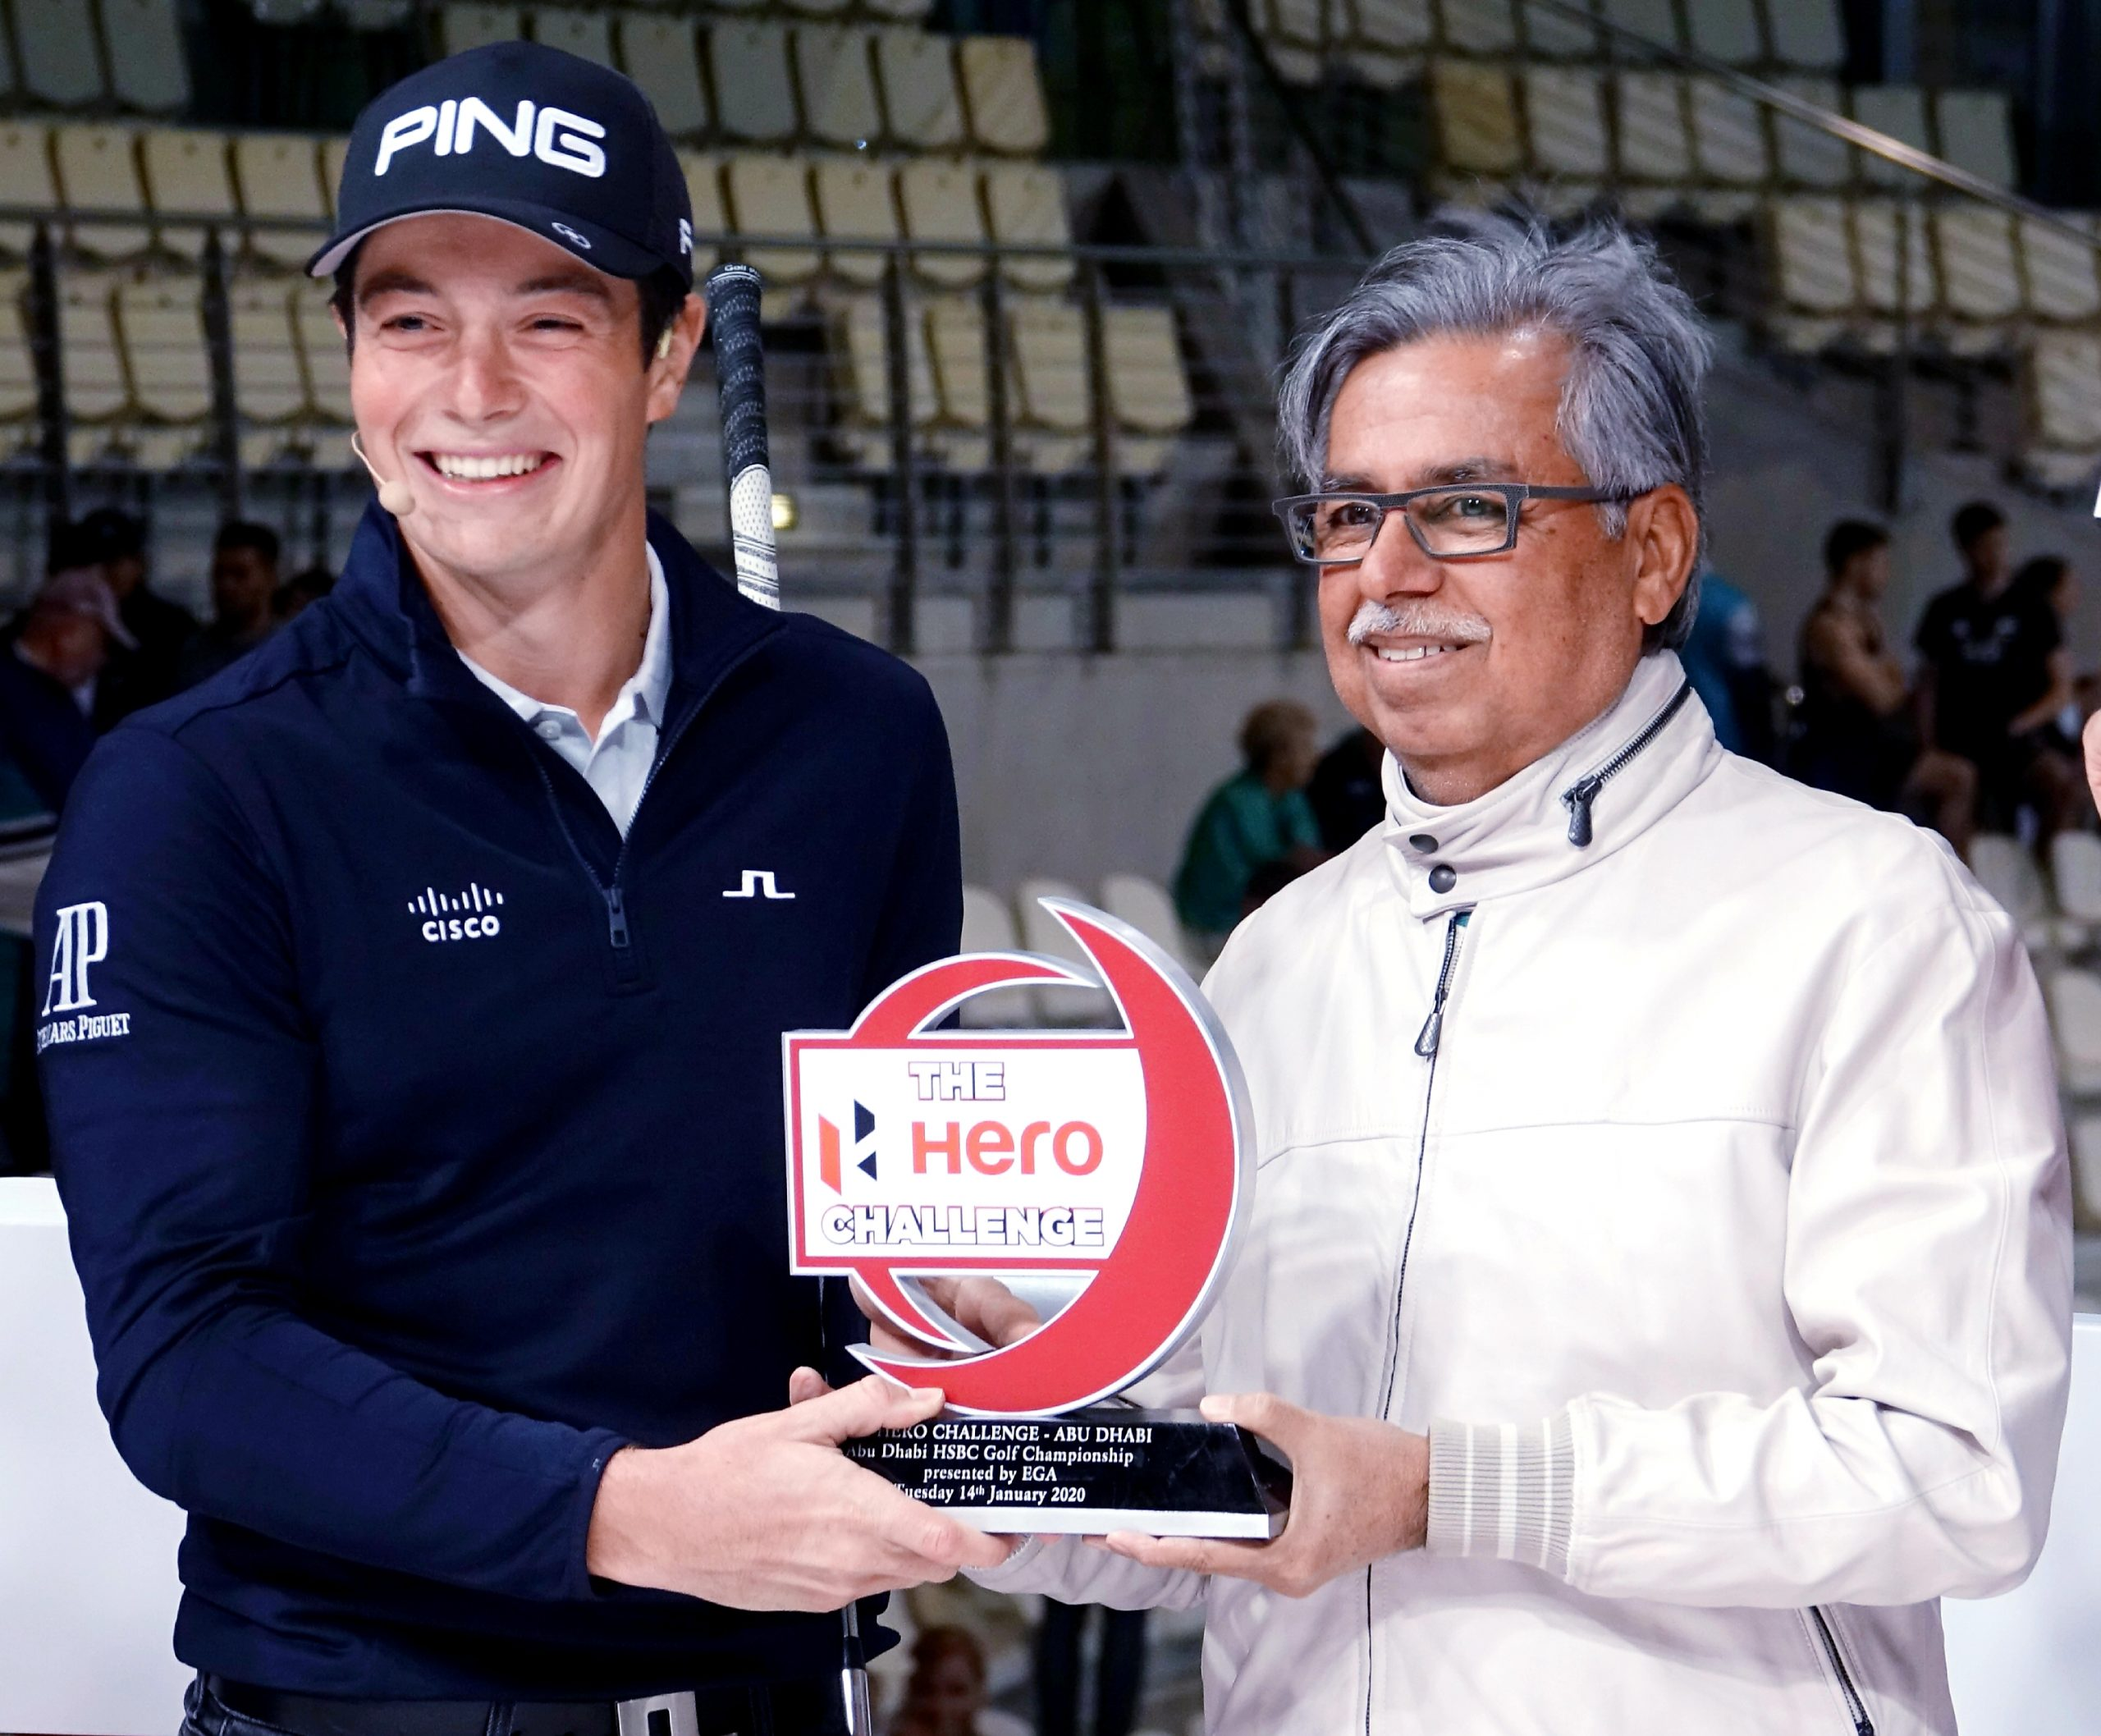 Young Hovland wins Hero Challenge, calls it his first 'pro win'